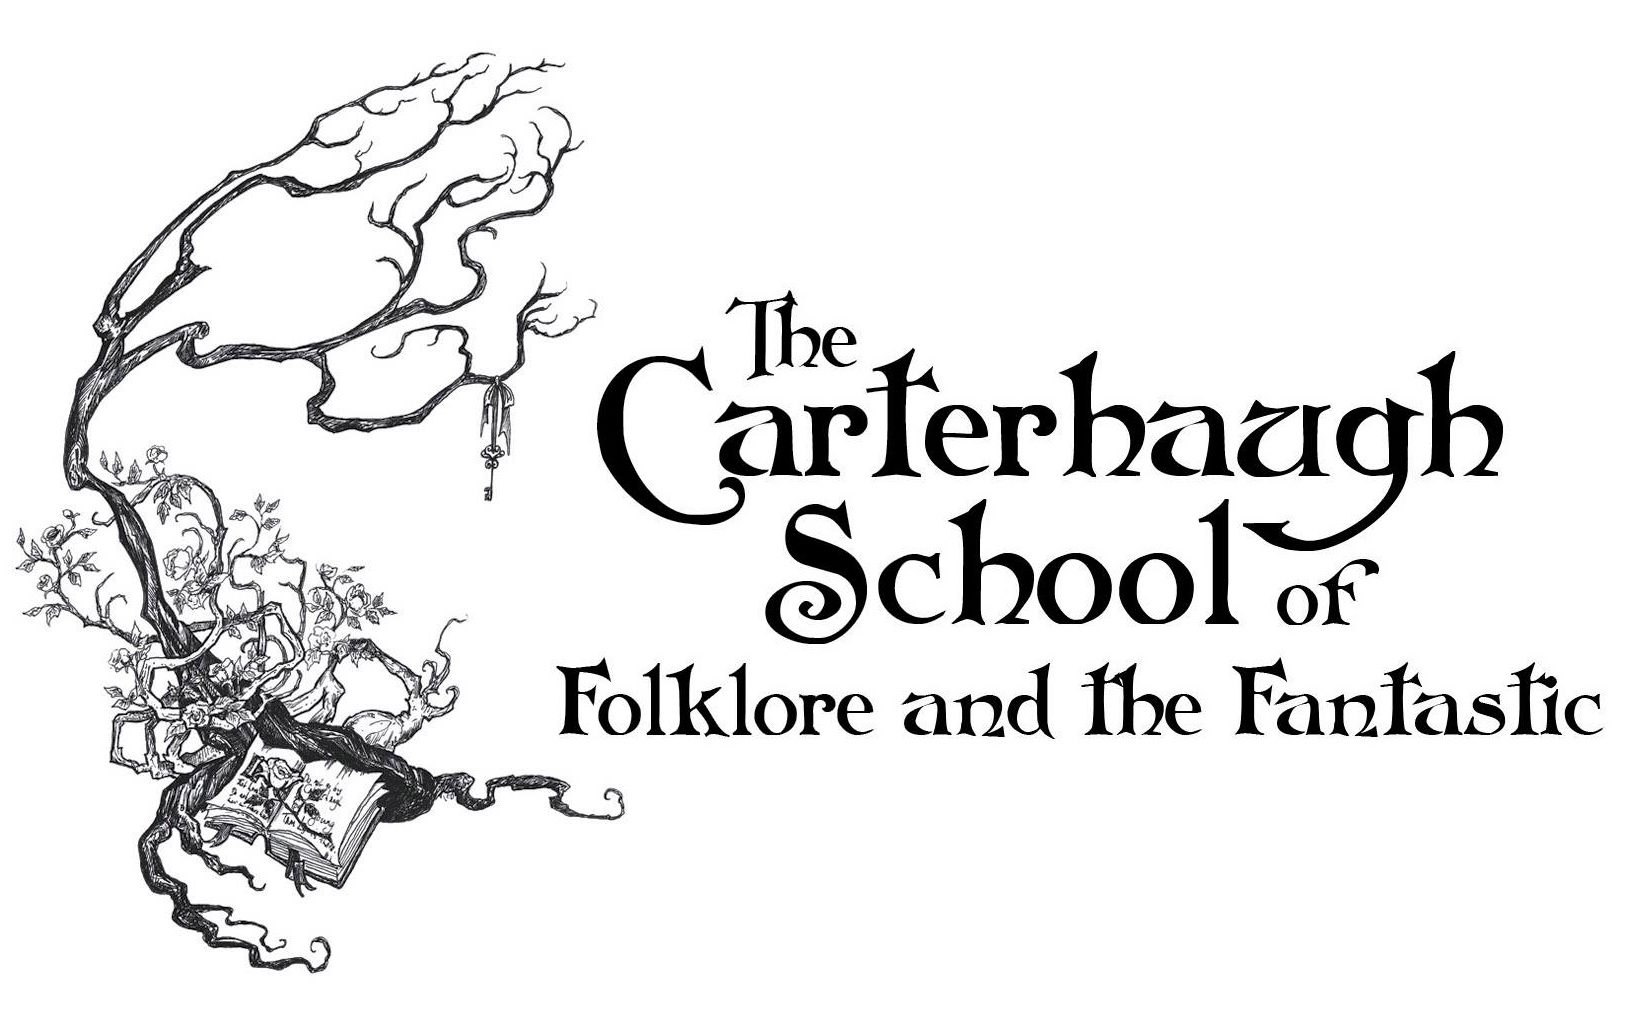 The Carterhaugh School of Folklore and the Fantastic